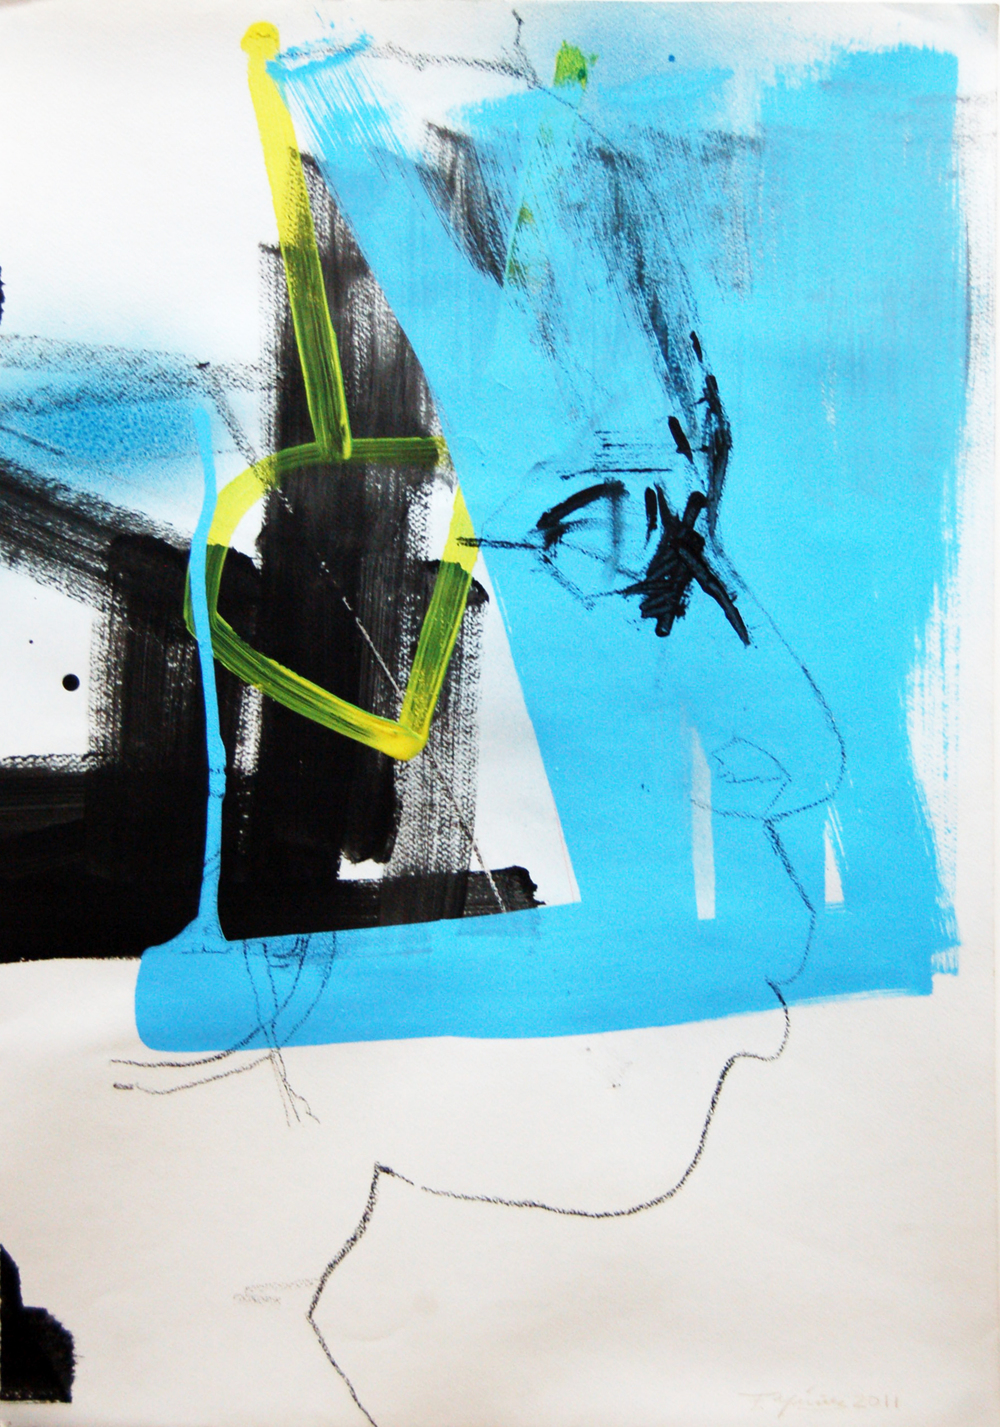 FN-006,  Francisco Nunez The Wall, Mixed media on paper, 52cmx 75cm.jpg